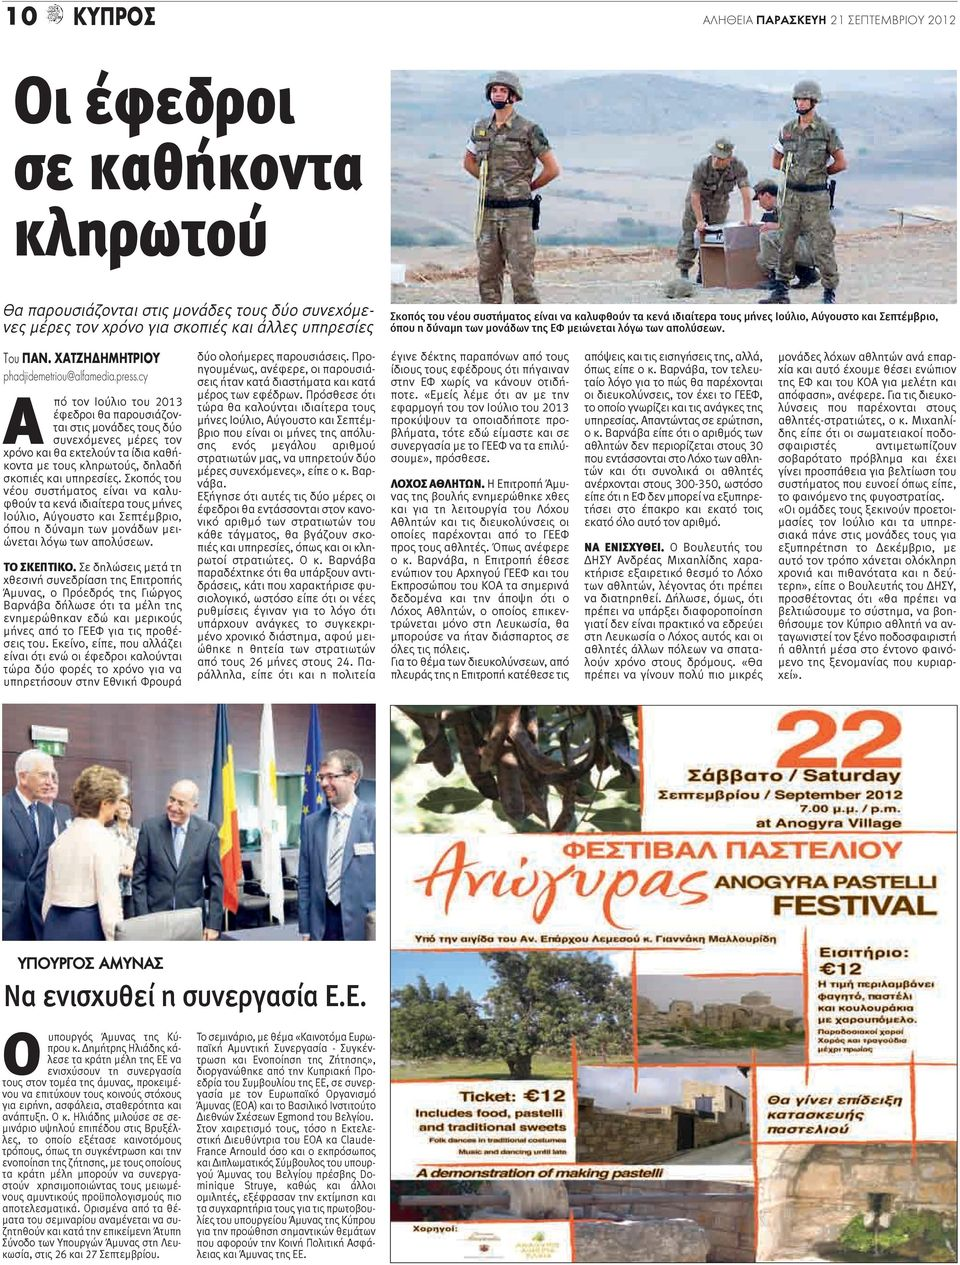 ΧΑΤΖΗΔΗΜΗΤΡΙΟY phadjidemetriou@alfamedia.press.